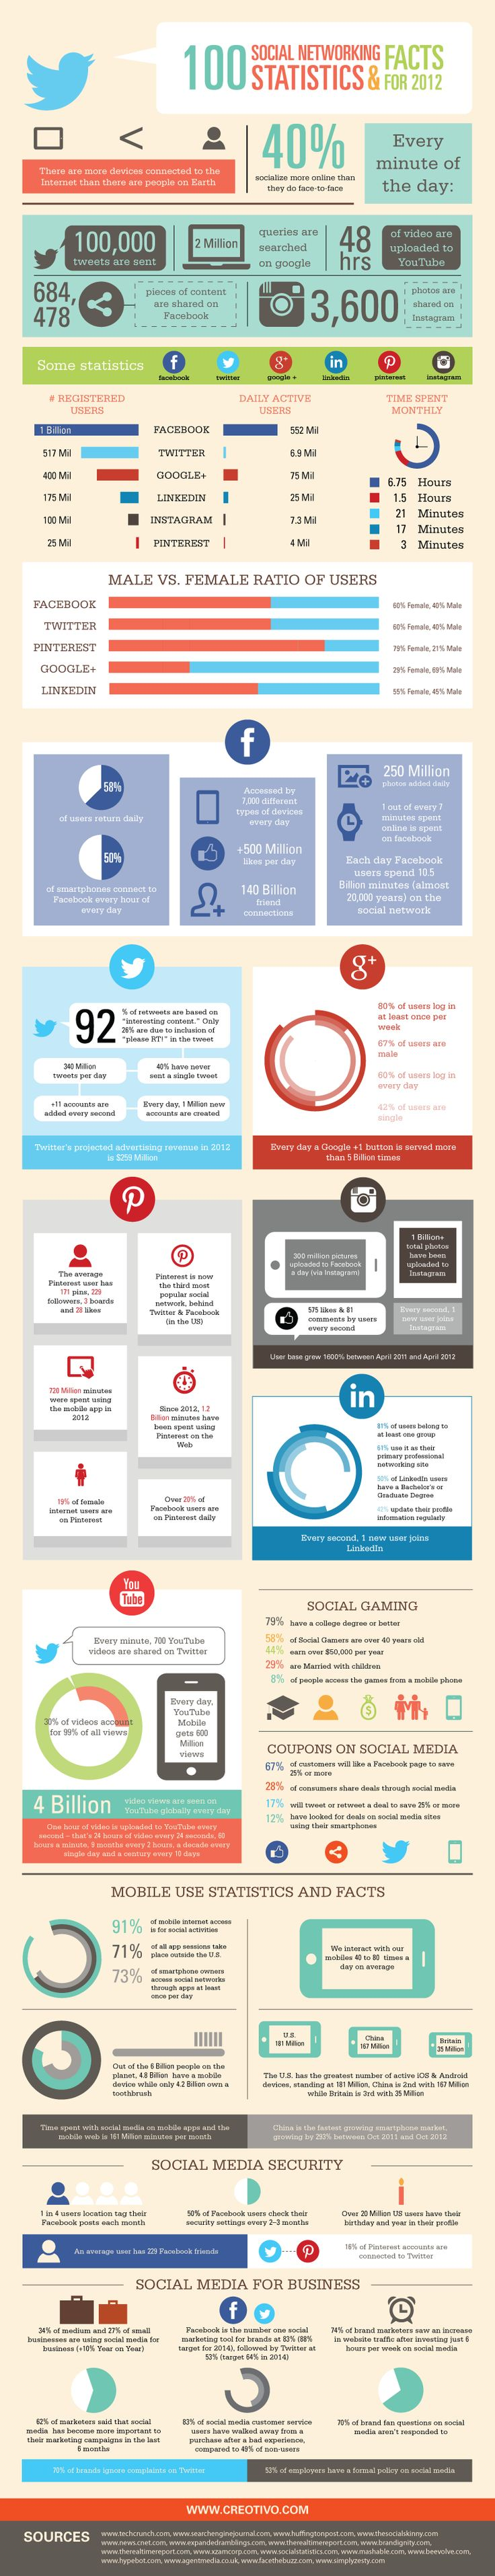 100 social mediafacts and figures of 2012 [infographic]